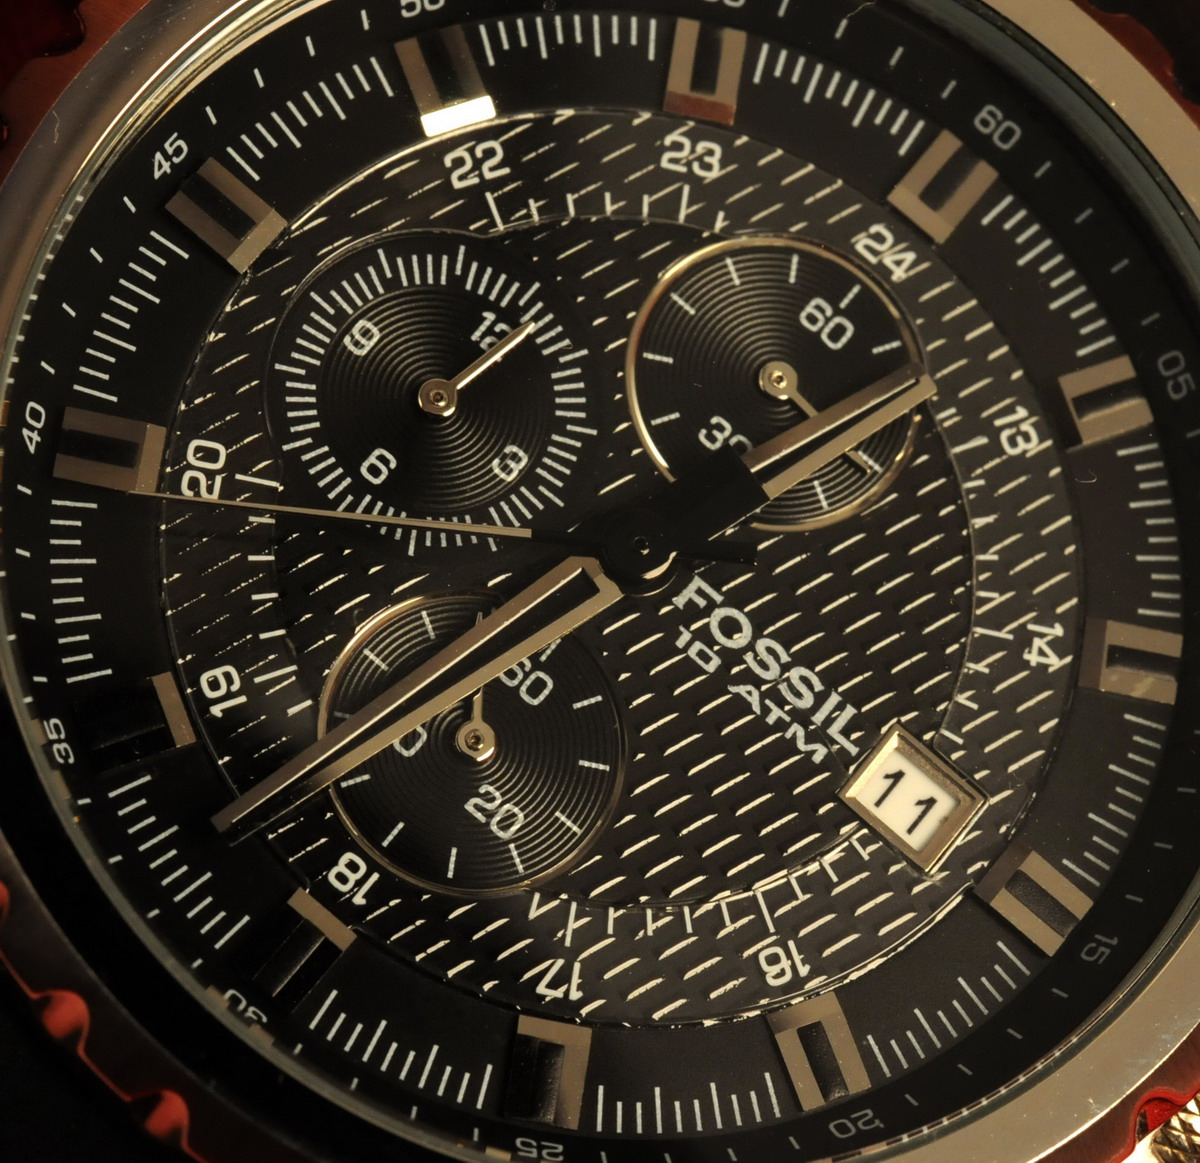 Fossil Reference CH 2497 Chronograph